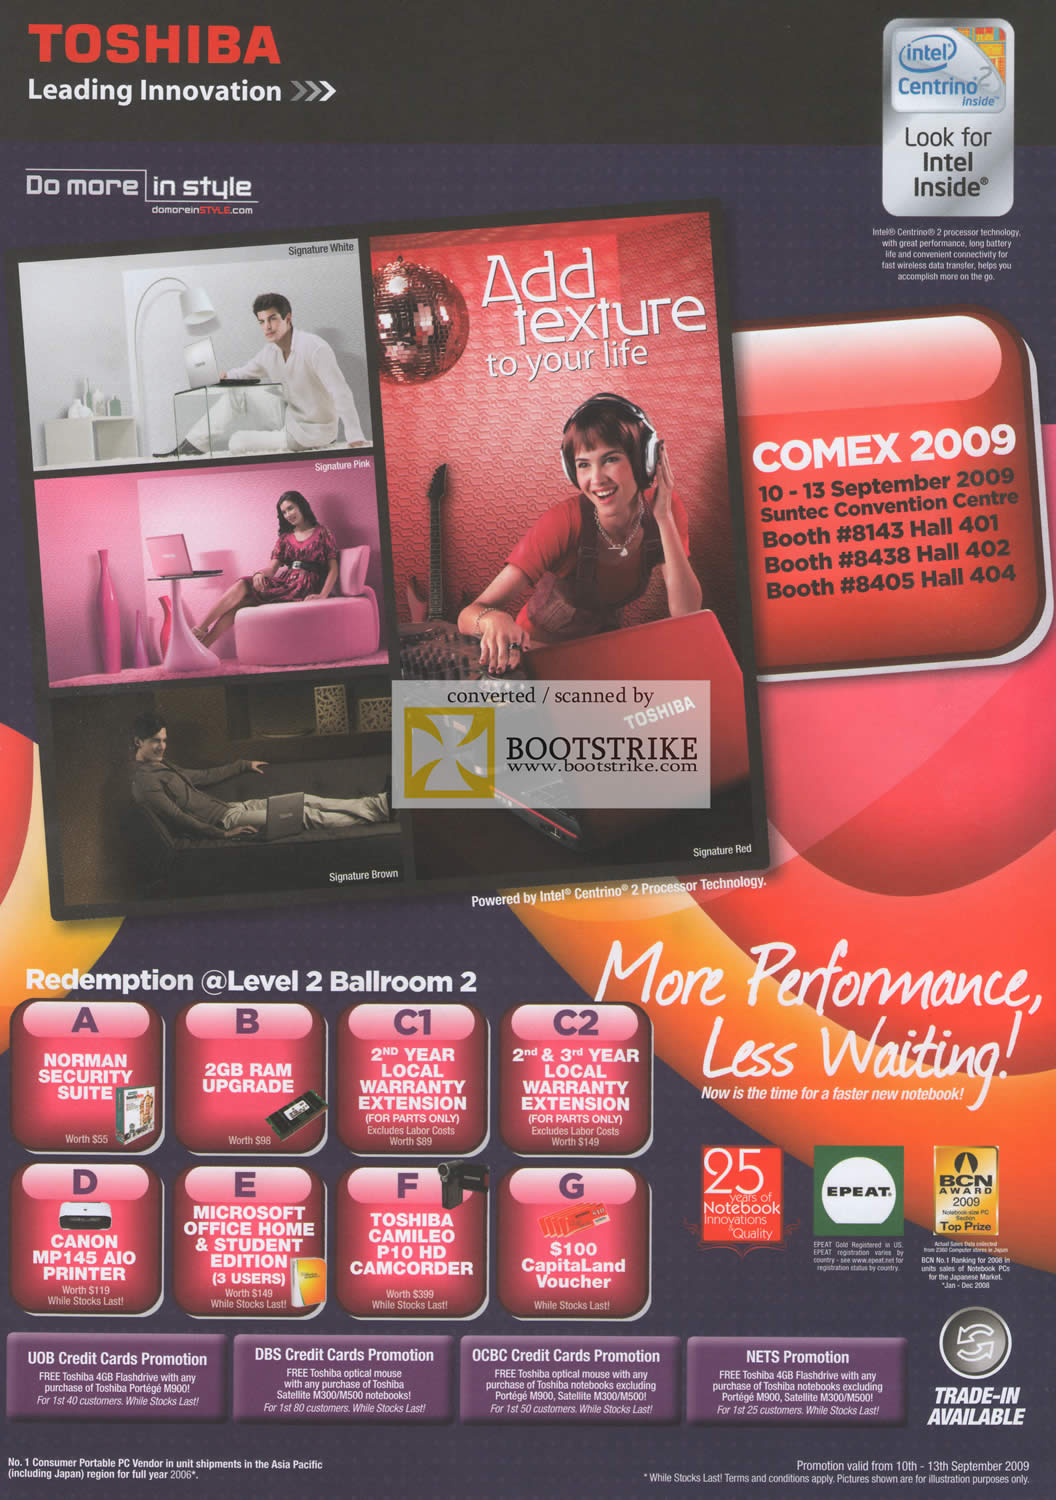 Comex 2009 price list image brochure of Toshiba Redemption Options Promotions